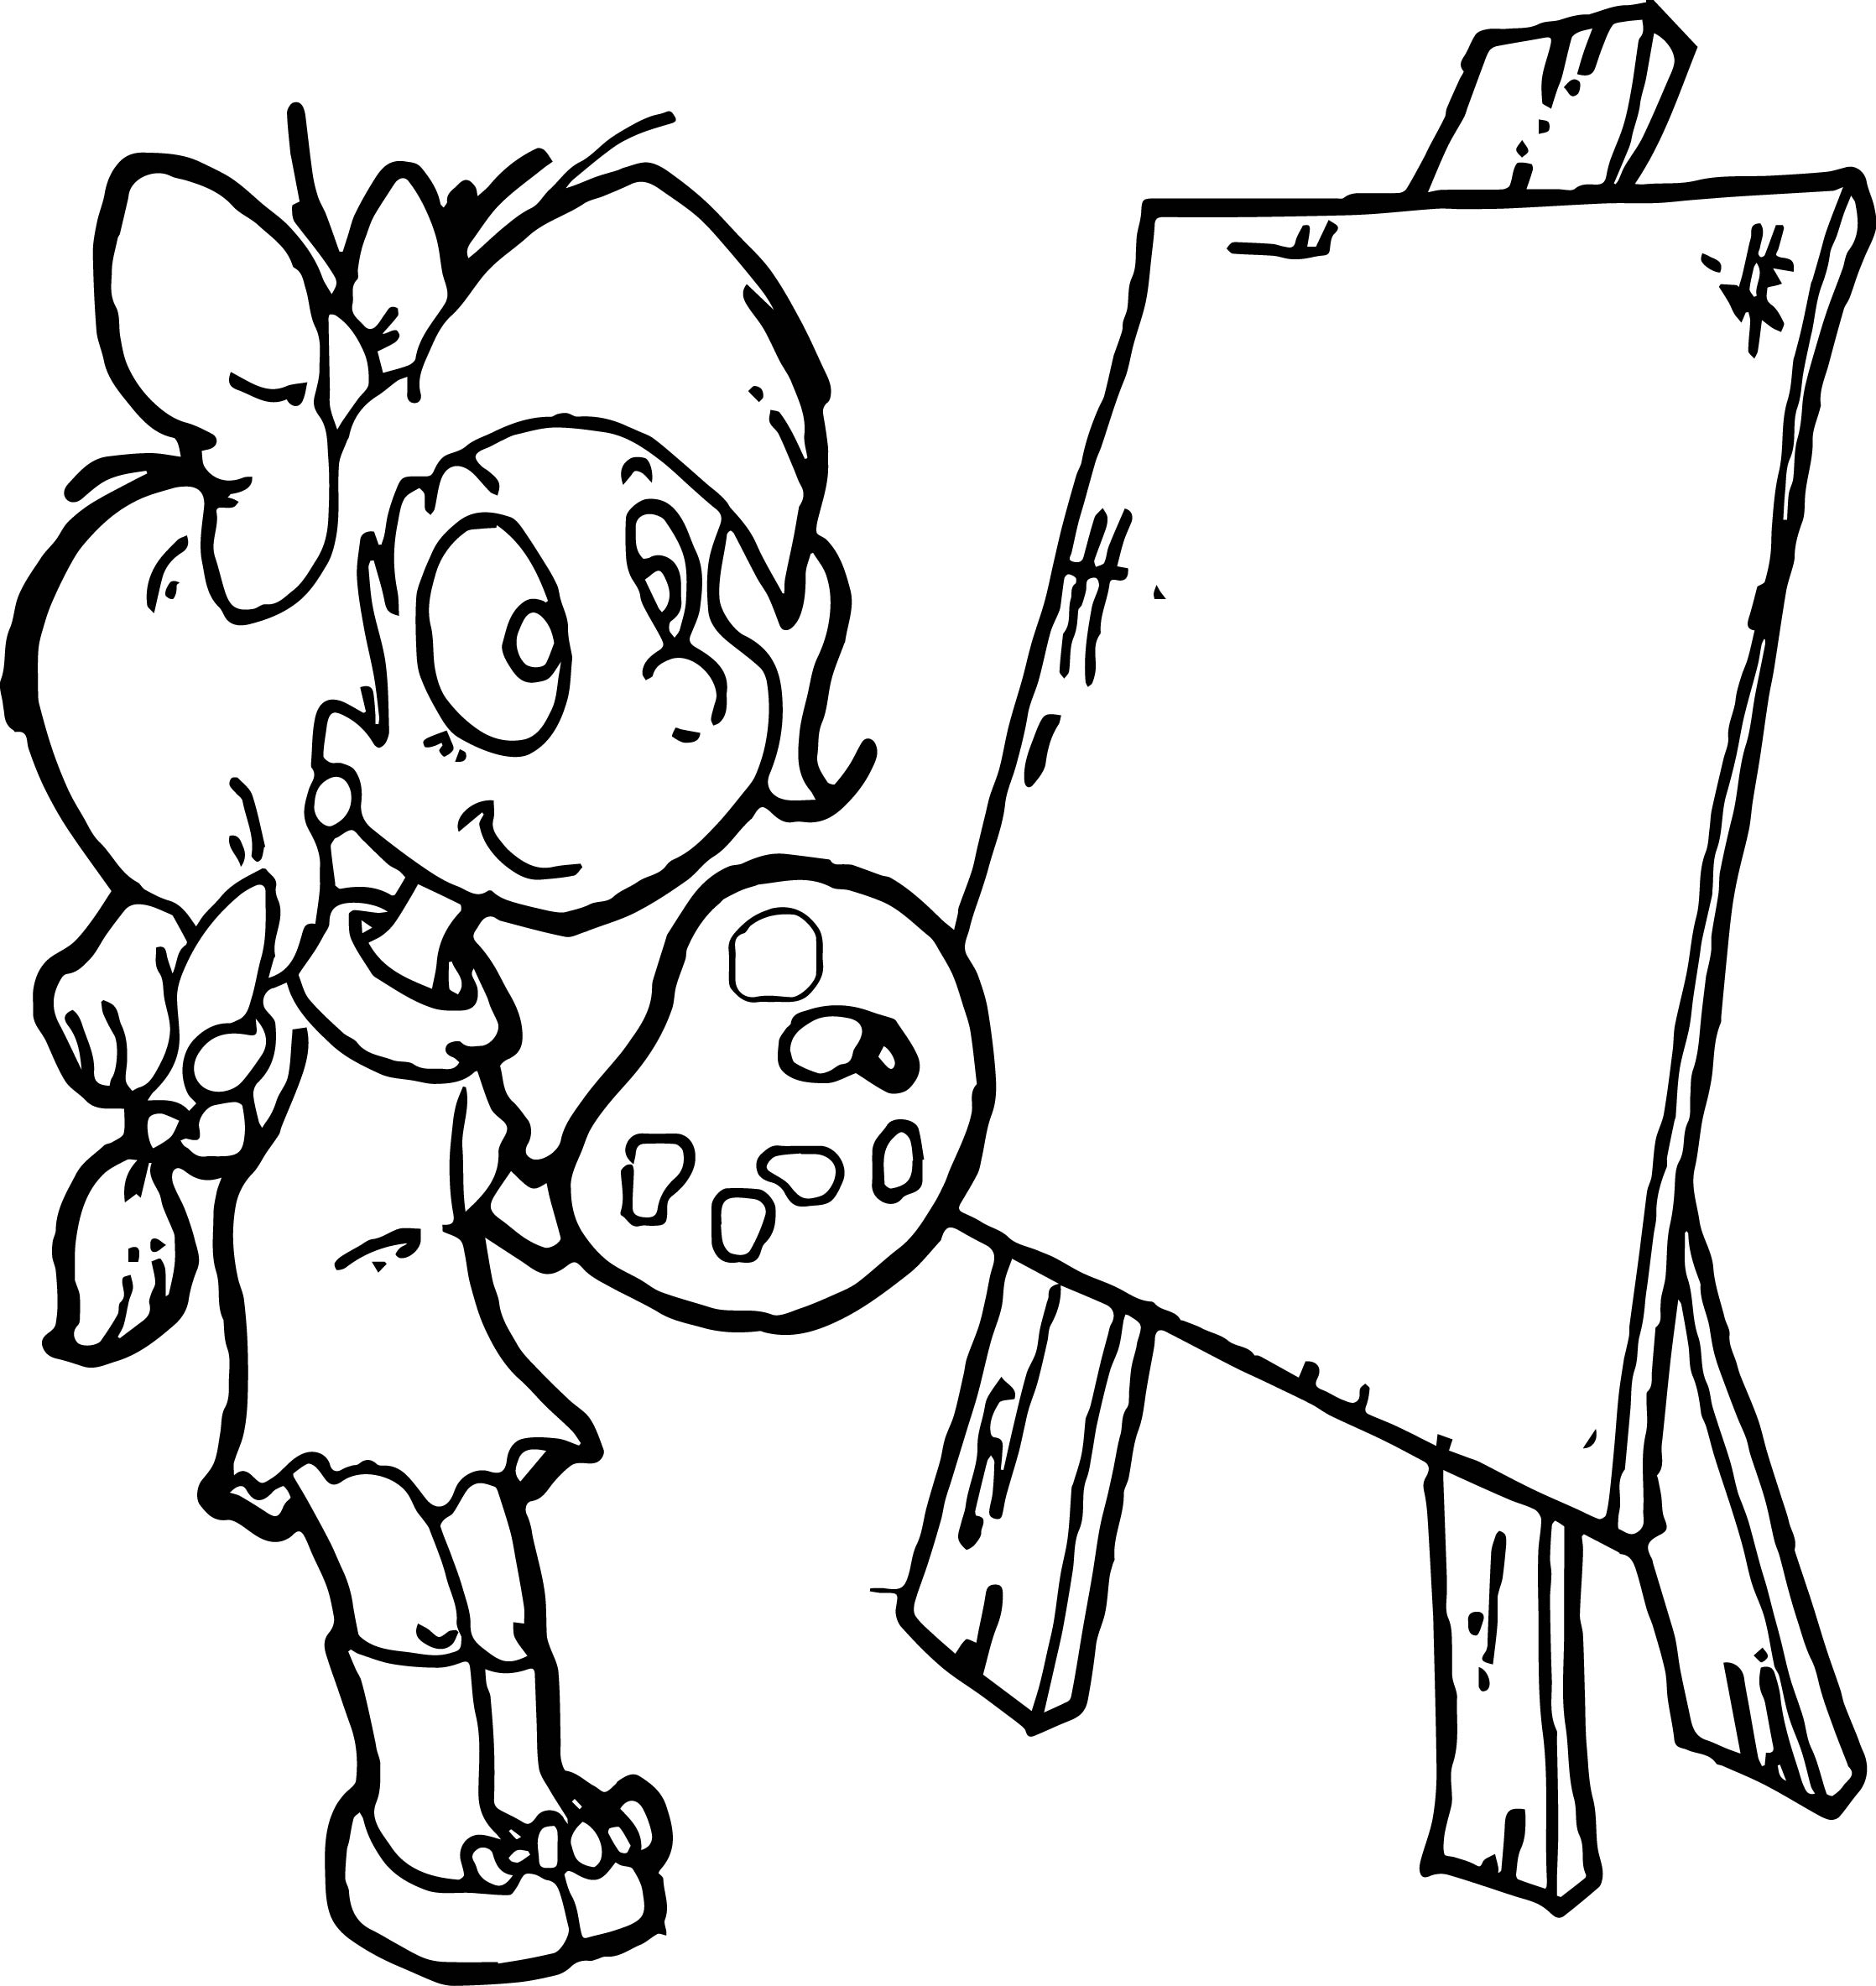 Girl Exhibition Cartoon Design Adult Coloring Page